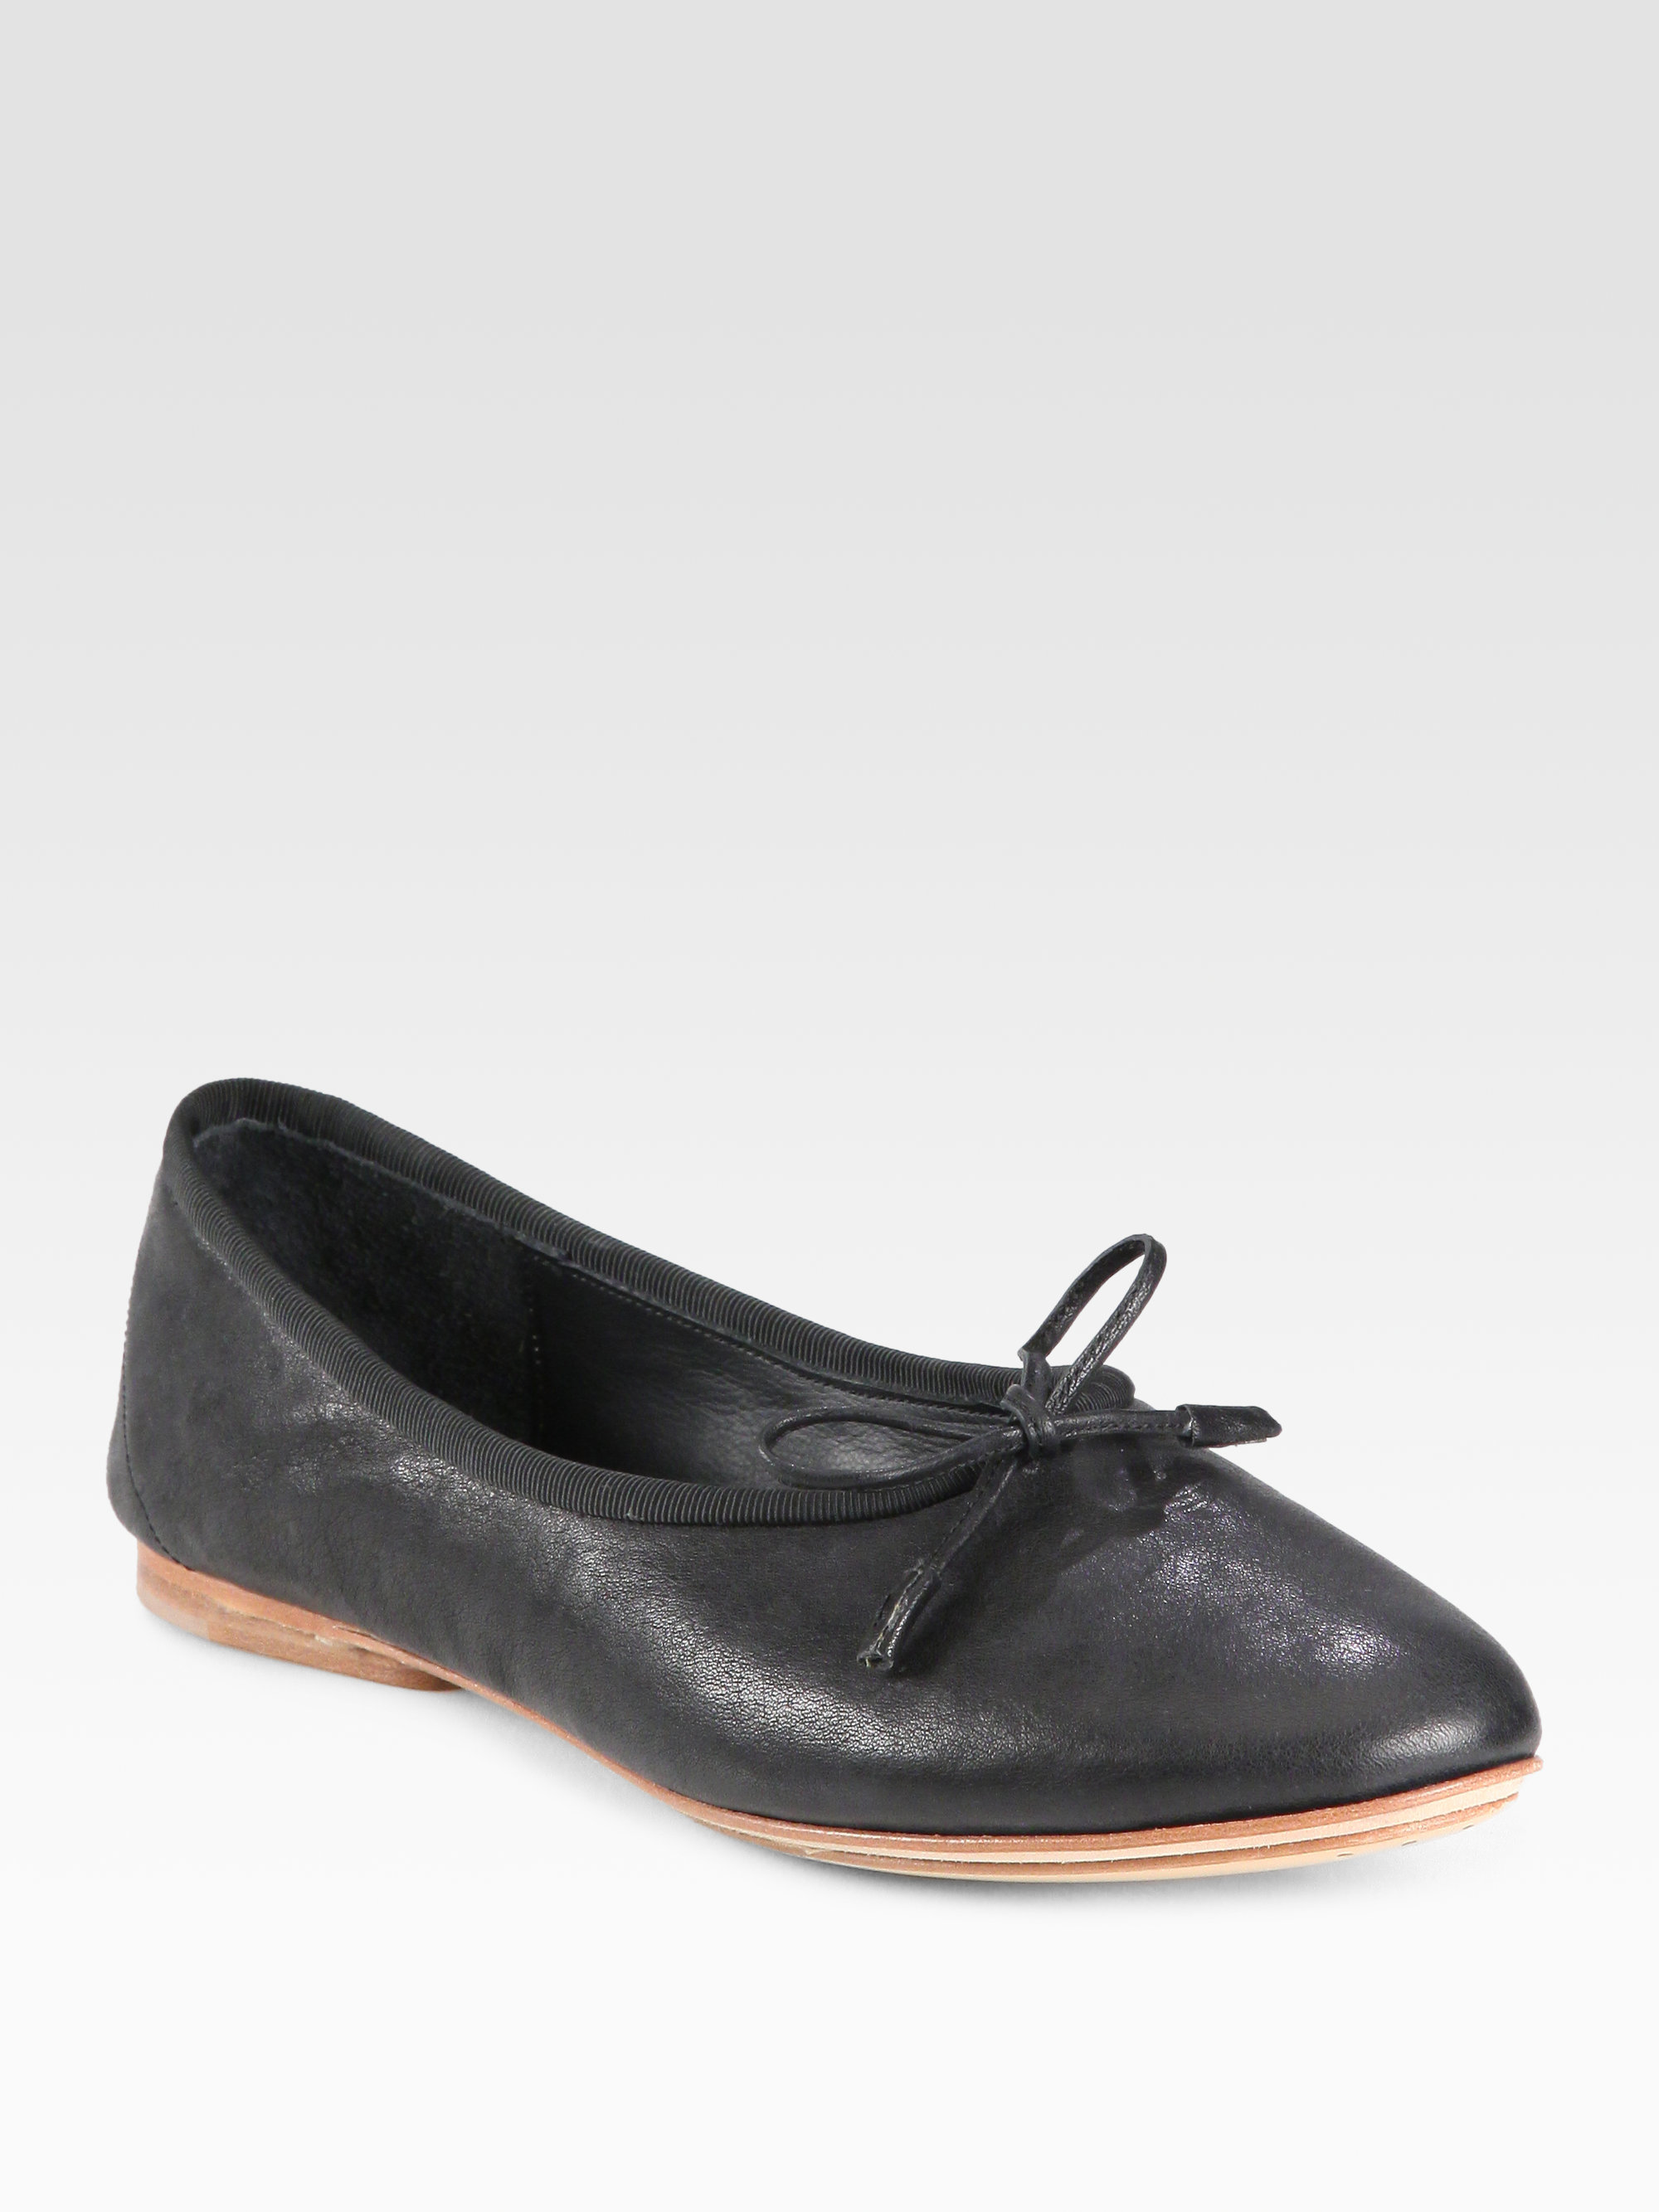 Rag & Bone Ballet Flats cheap new recommend online free shipping many kinds of free shipping cheap vxEJ8EgF